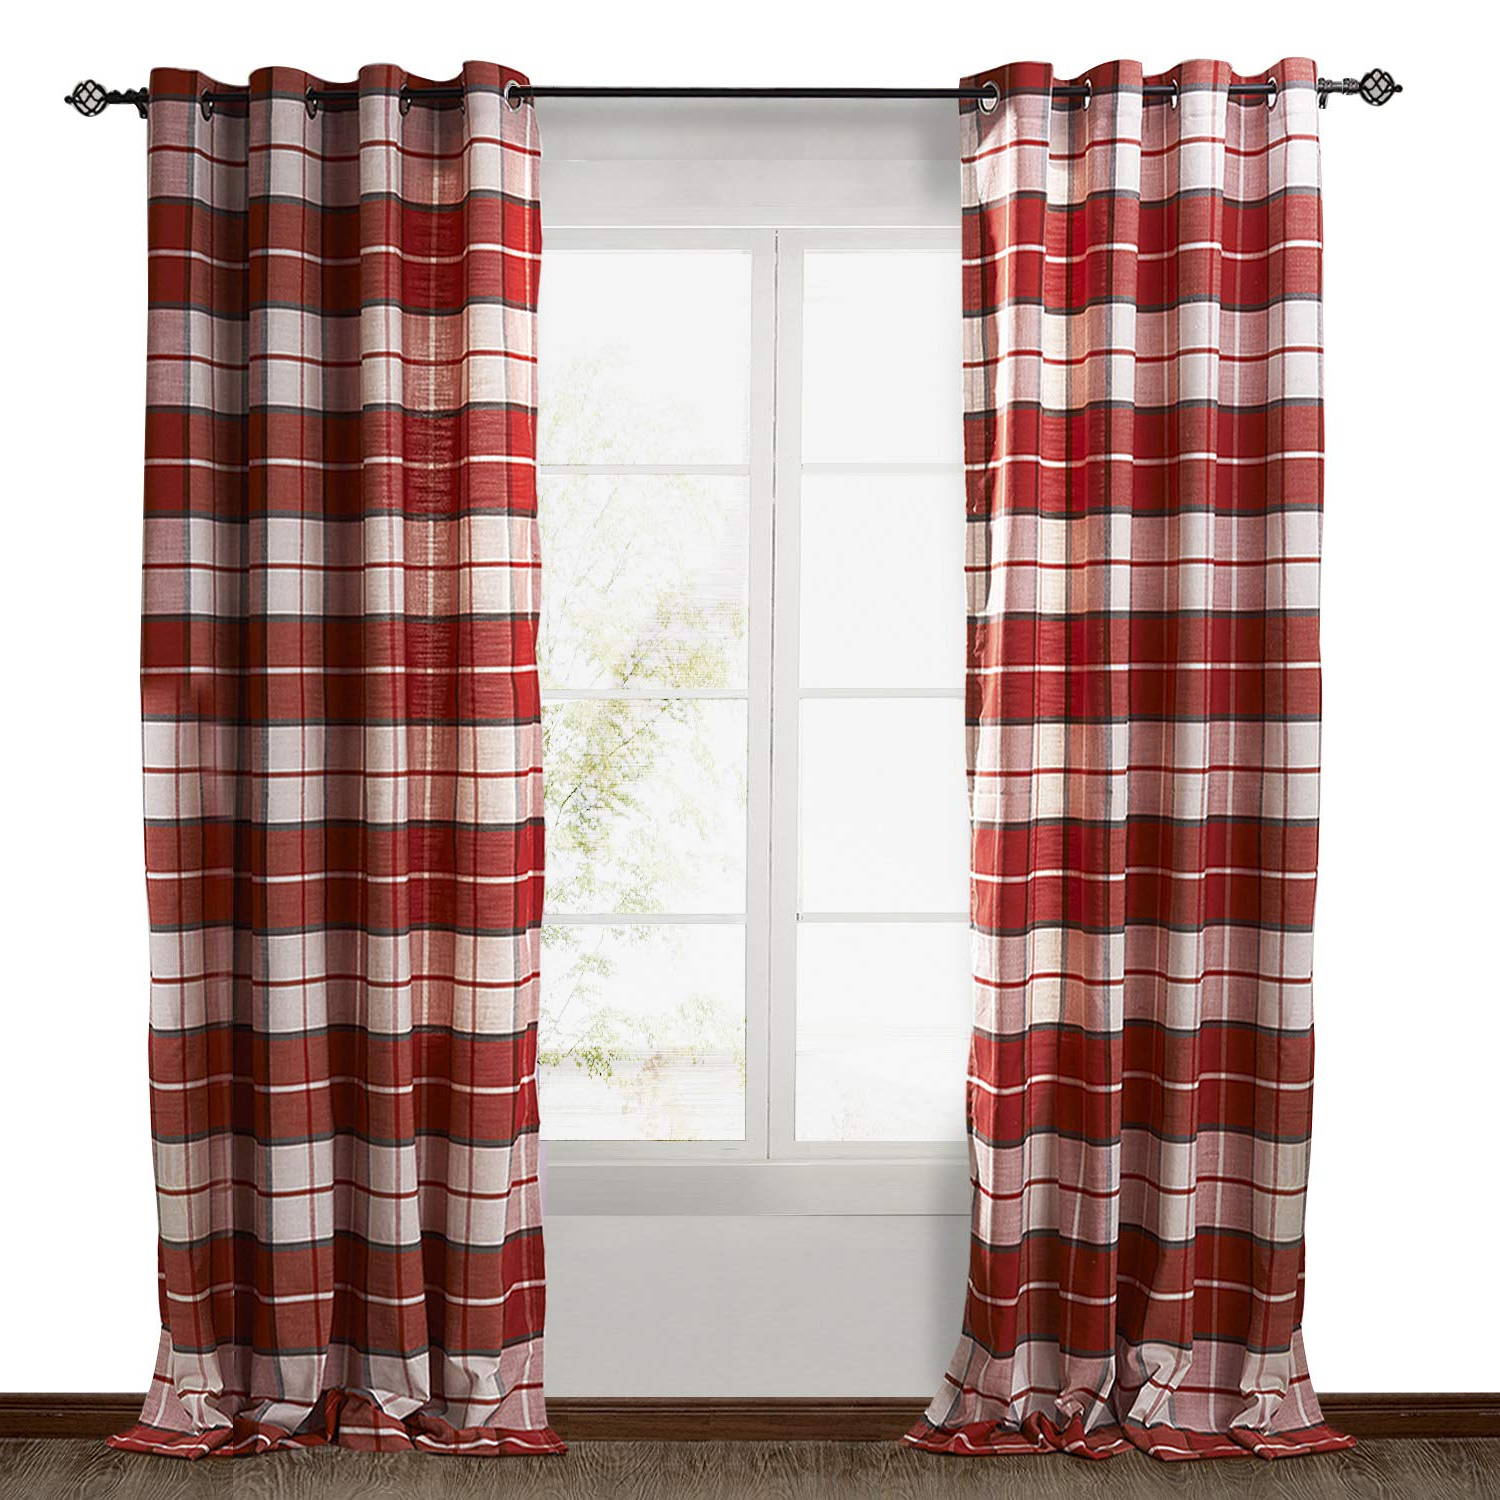 Most Popular Chadmade Check Plaid Cotton Nickel Grommet Eyelet Blackout Lined Window  Curtain Panel Drapes (1 Panel) Red 50Wx96L Inch Throughout Burgundy Cotton Blend Classic Checkered Decorative Window Curtains (Gallery 13 of 20)